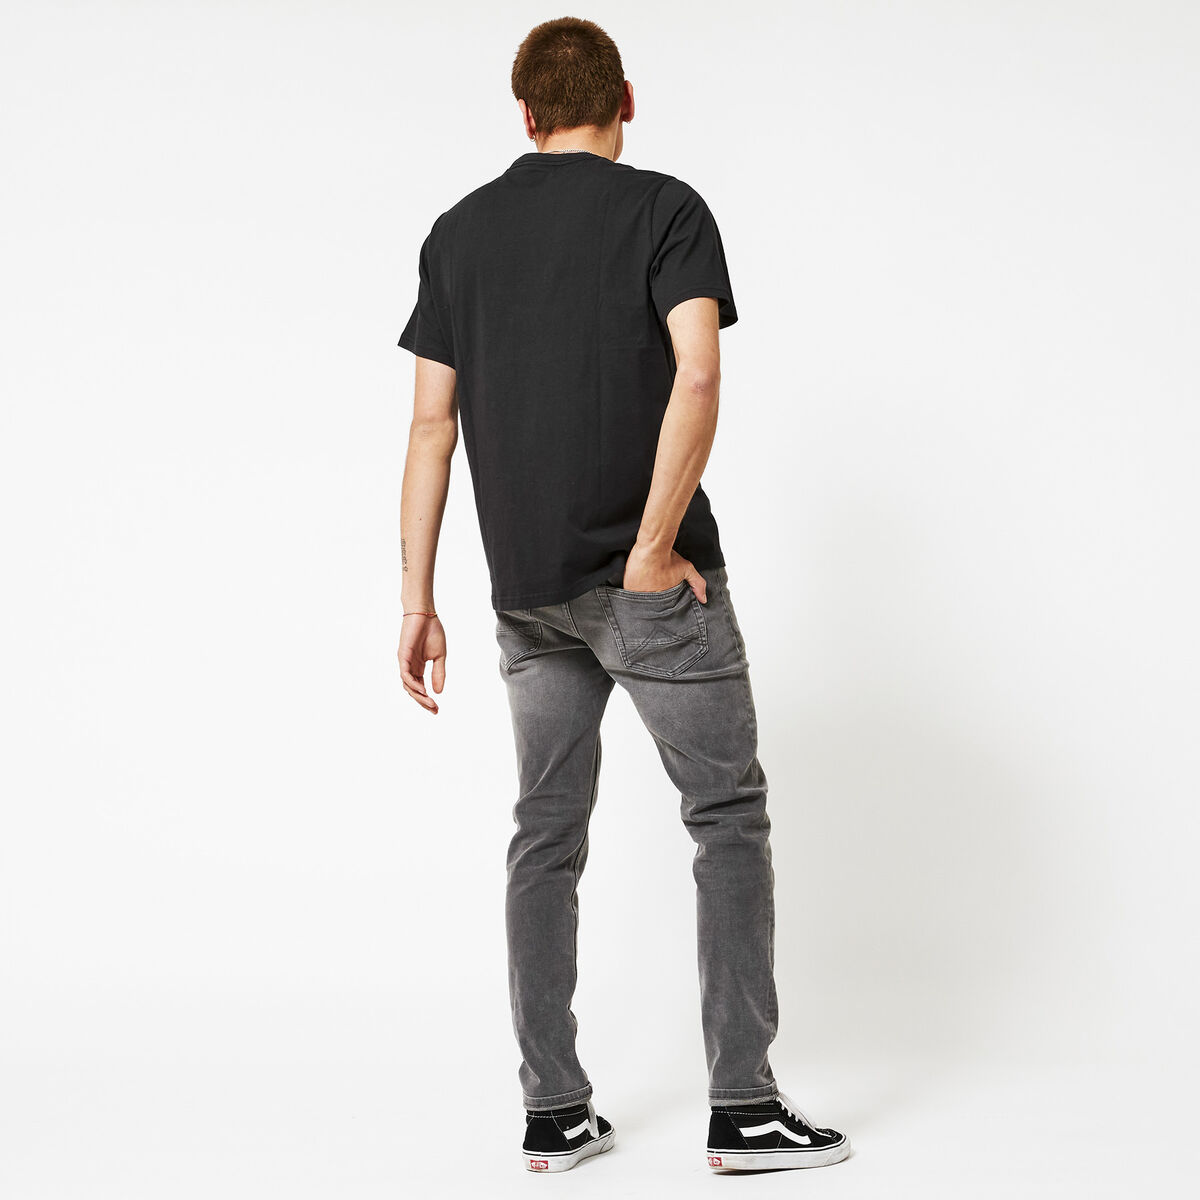 Relaxed boxtab tee